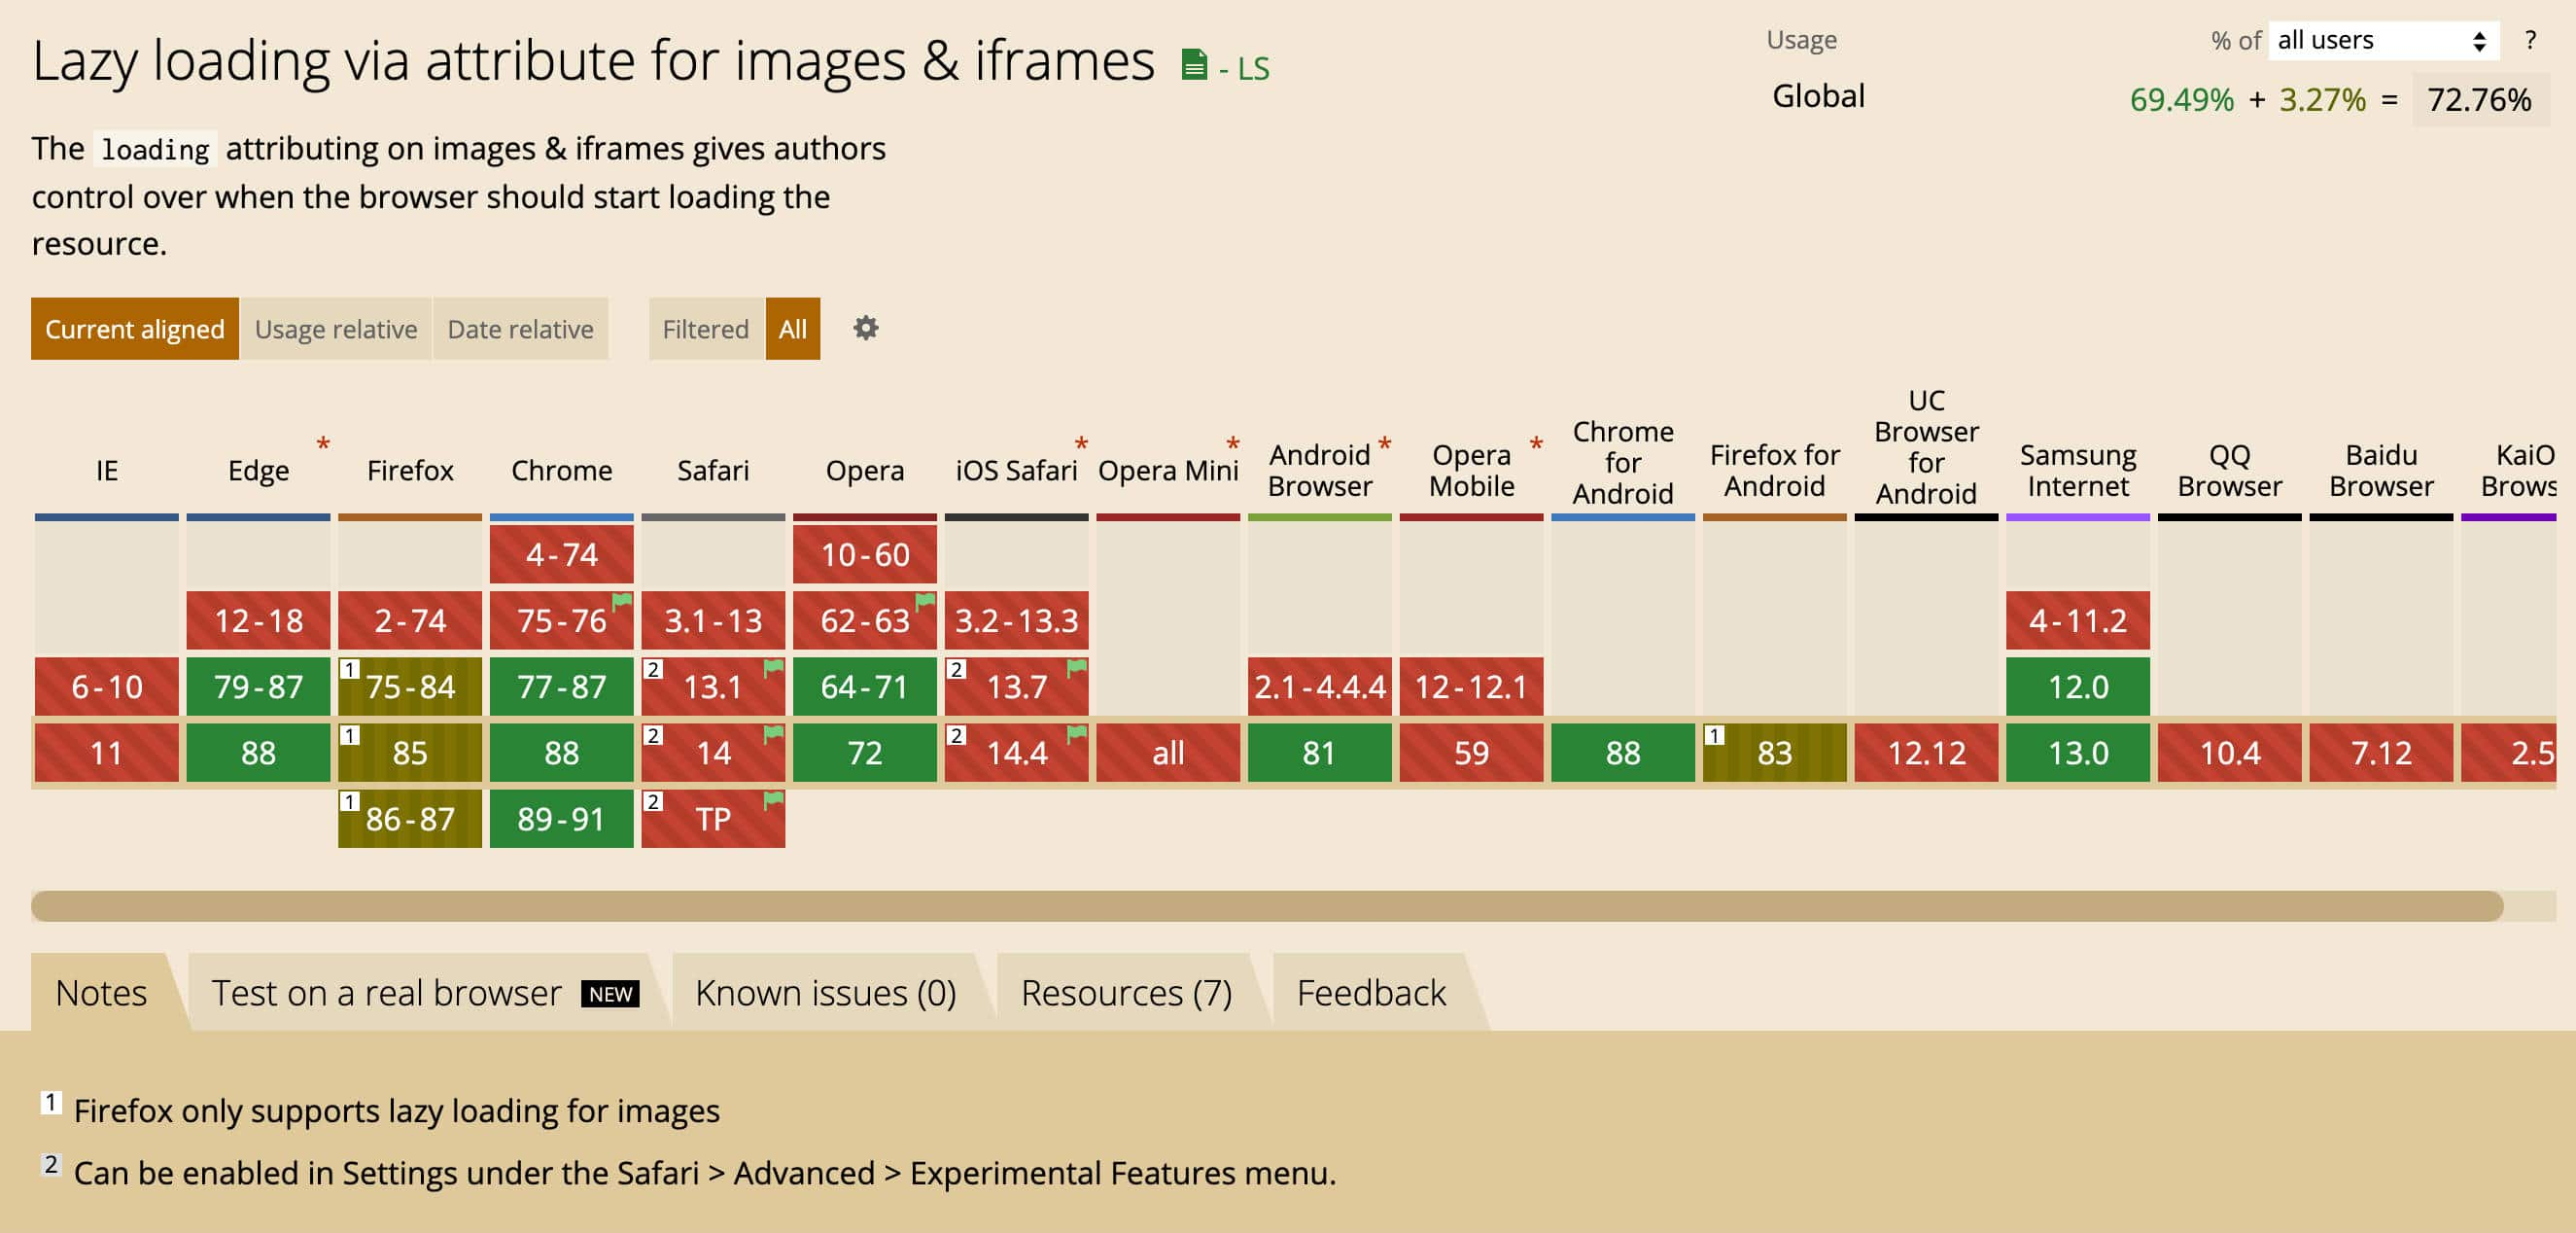 Lazy loading via attribute for images & iframes